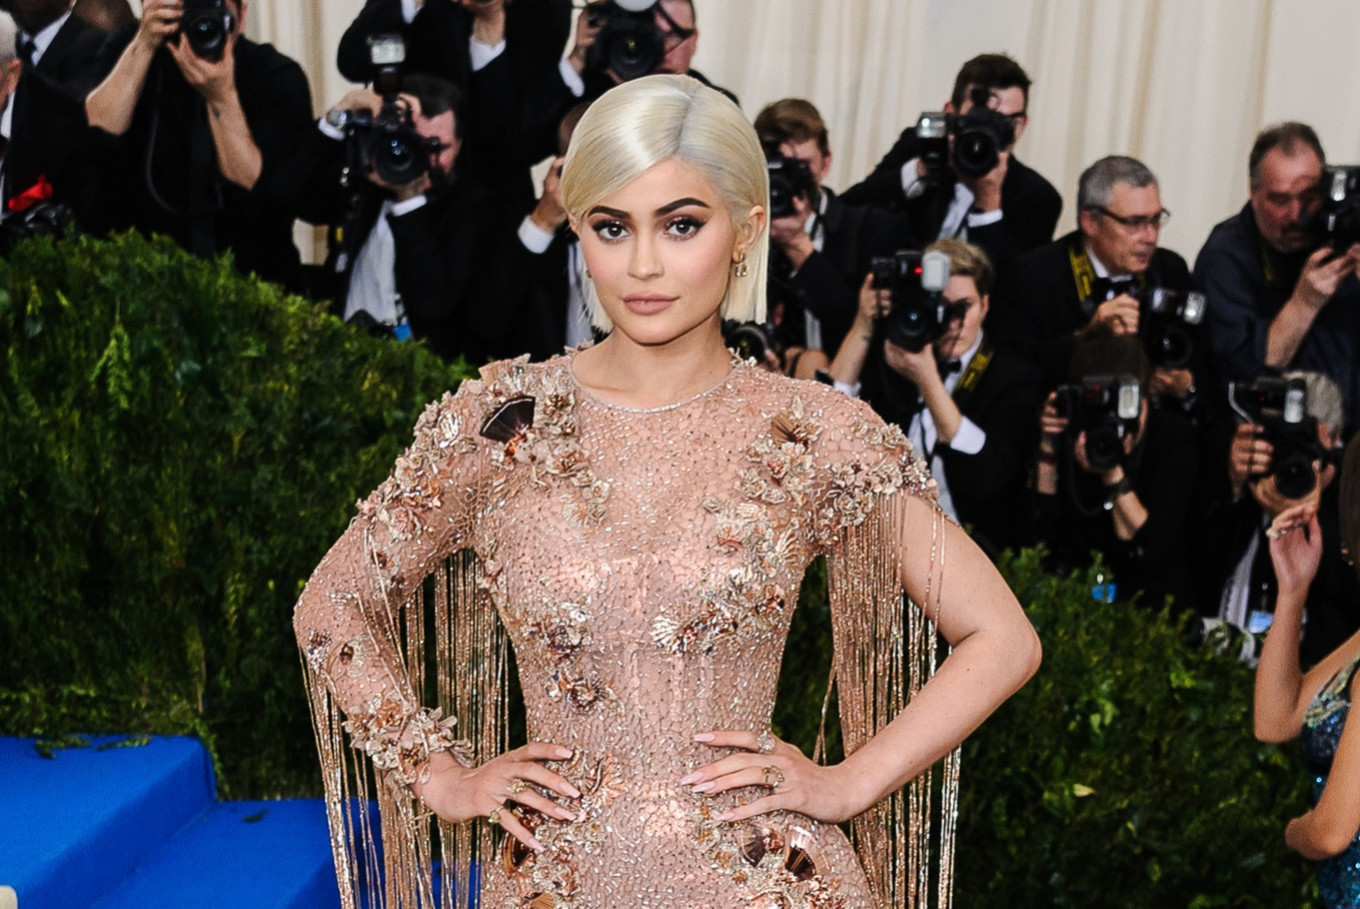 Forbes drops Kylie Jenner from billionaires list